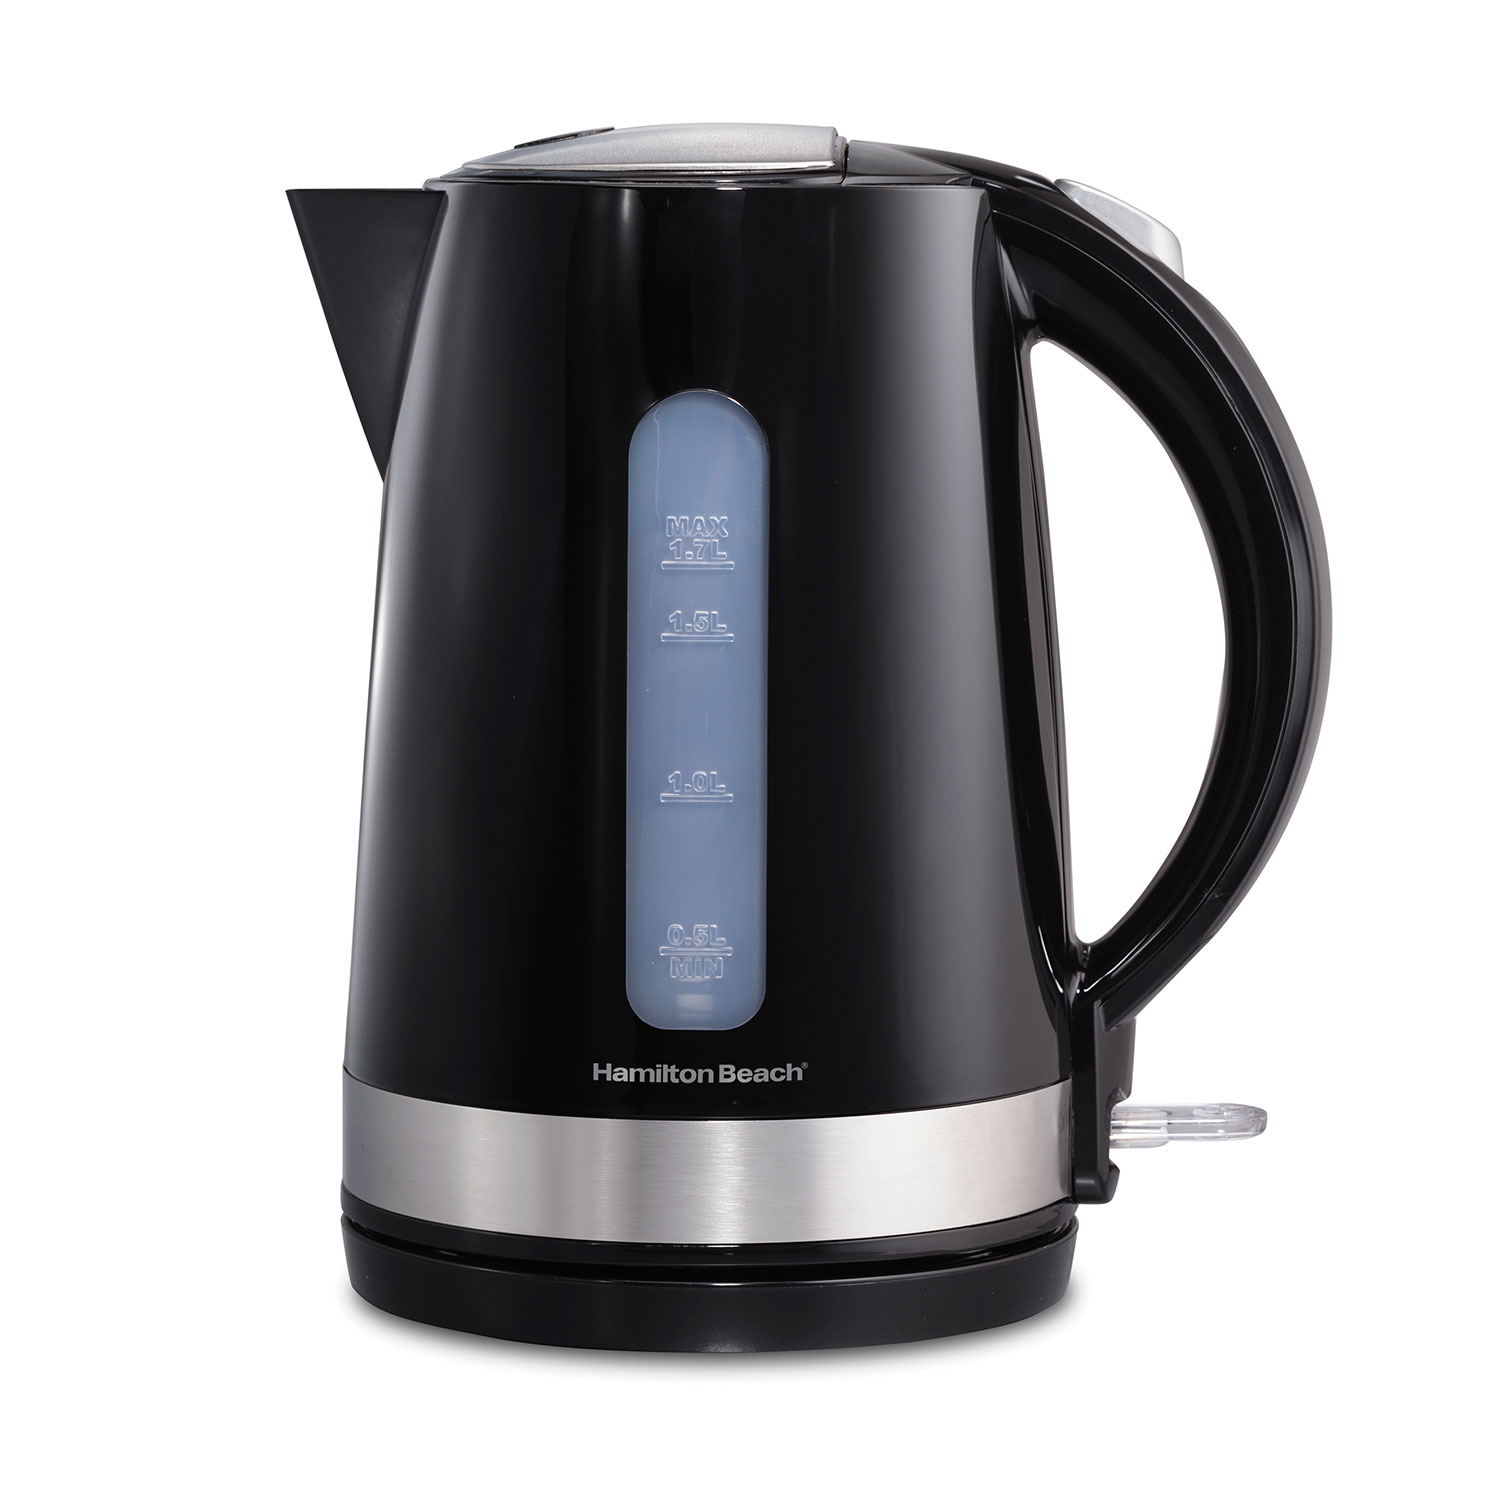 Large 1.7 Liter Cordless Kettle (41010)